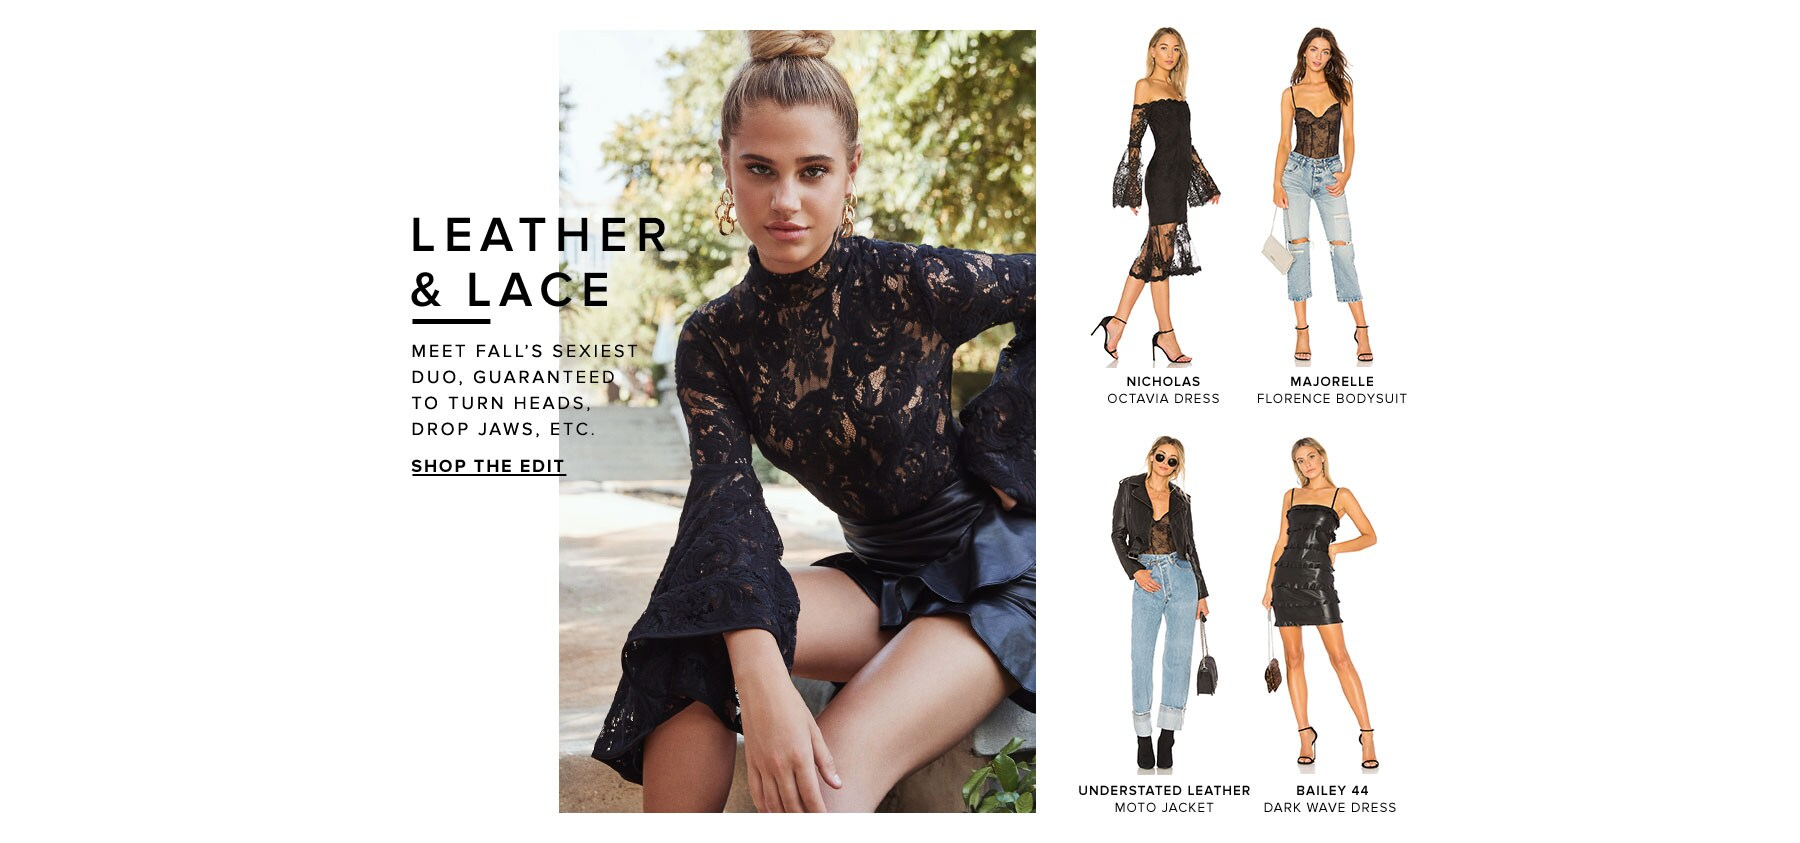 Leather & Lace. Meet fall's sexiest duo, guaranteed to turn heads, drop jaws, etc. Shop the Edit